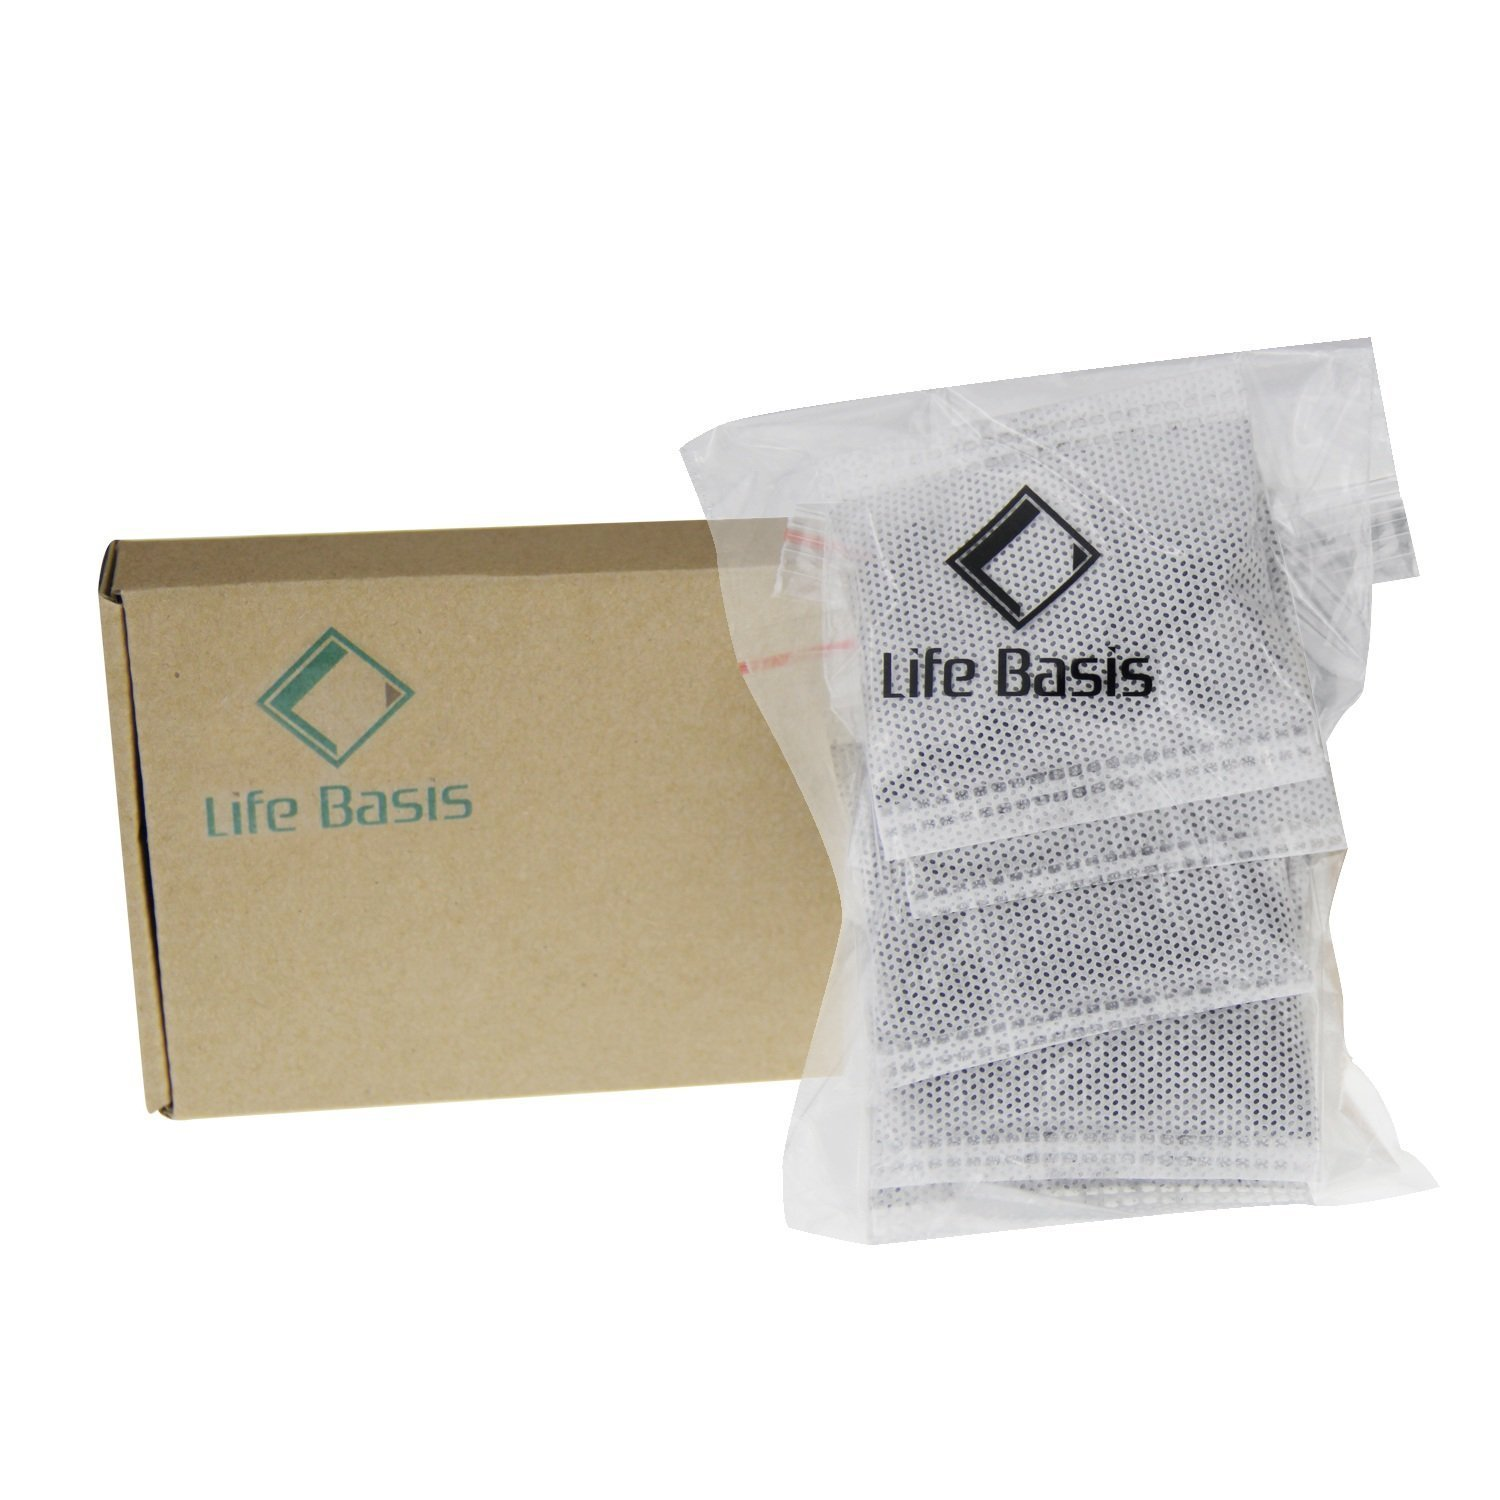 Life Basis Distiller Carbon Filter Bags Activated Charcoal Filter for Water Distillers Pure Water (5 Pack)